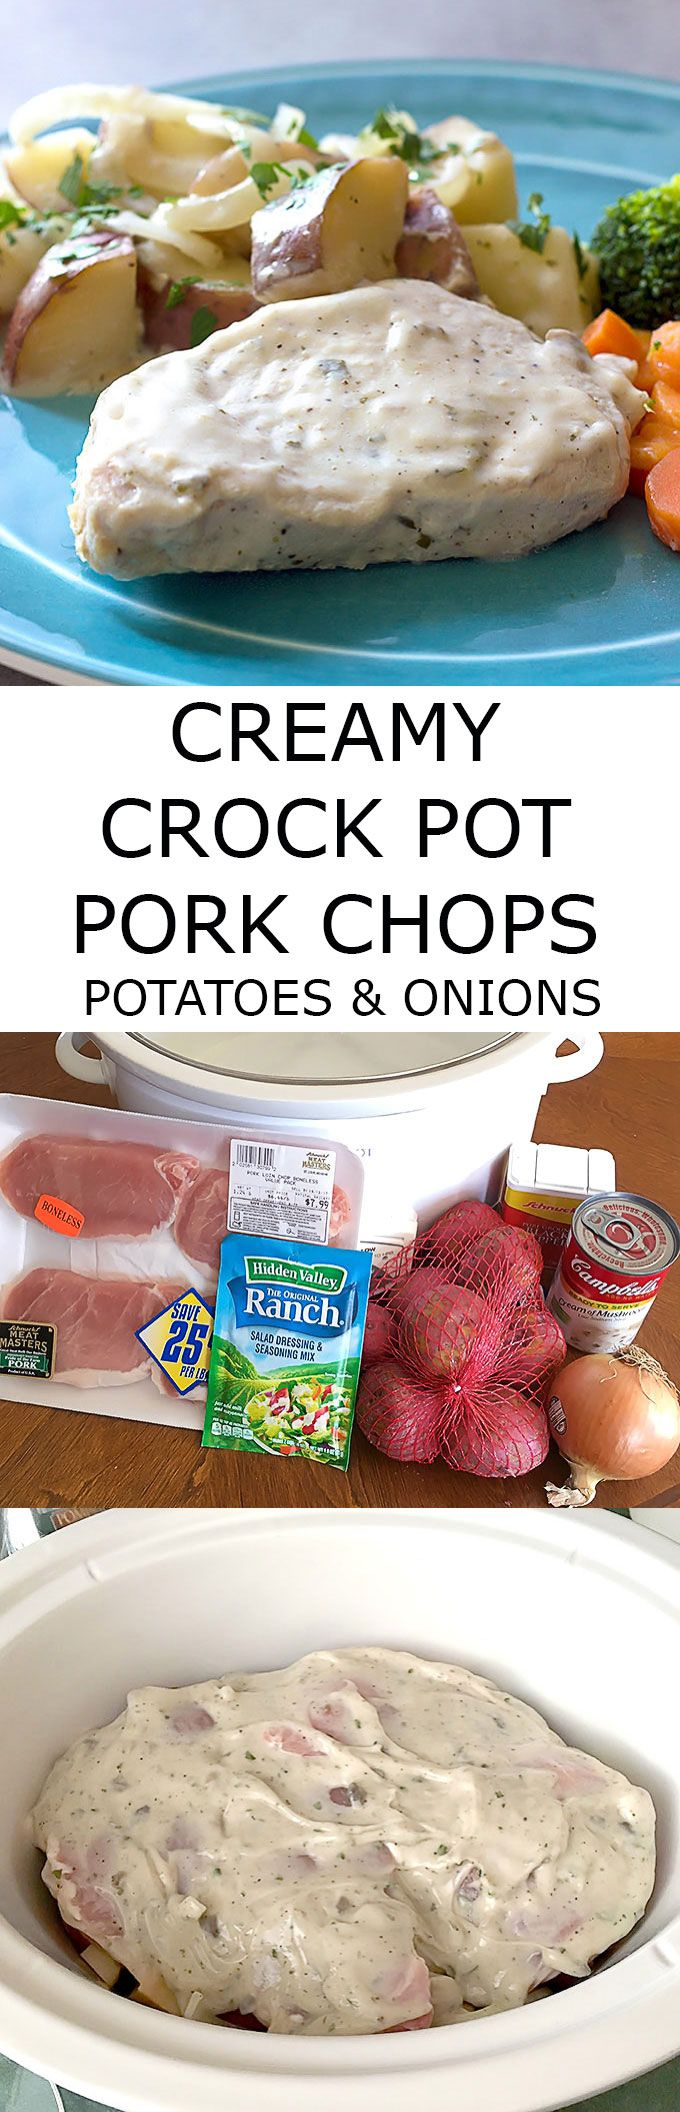 Creamy Crock Pot Pork Chops Potatoes & Onions is a comforting delicious dinner that only takes a few ingredients and a few minutes to prepare. via @afinks